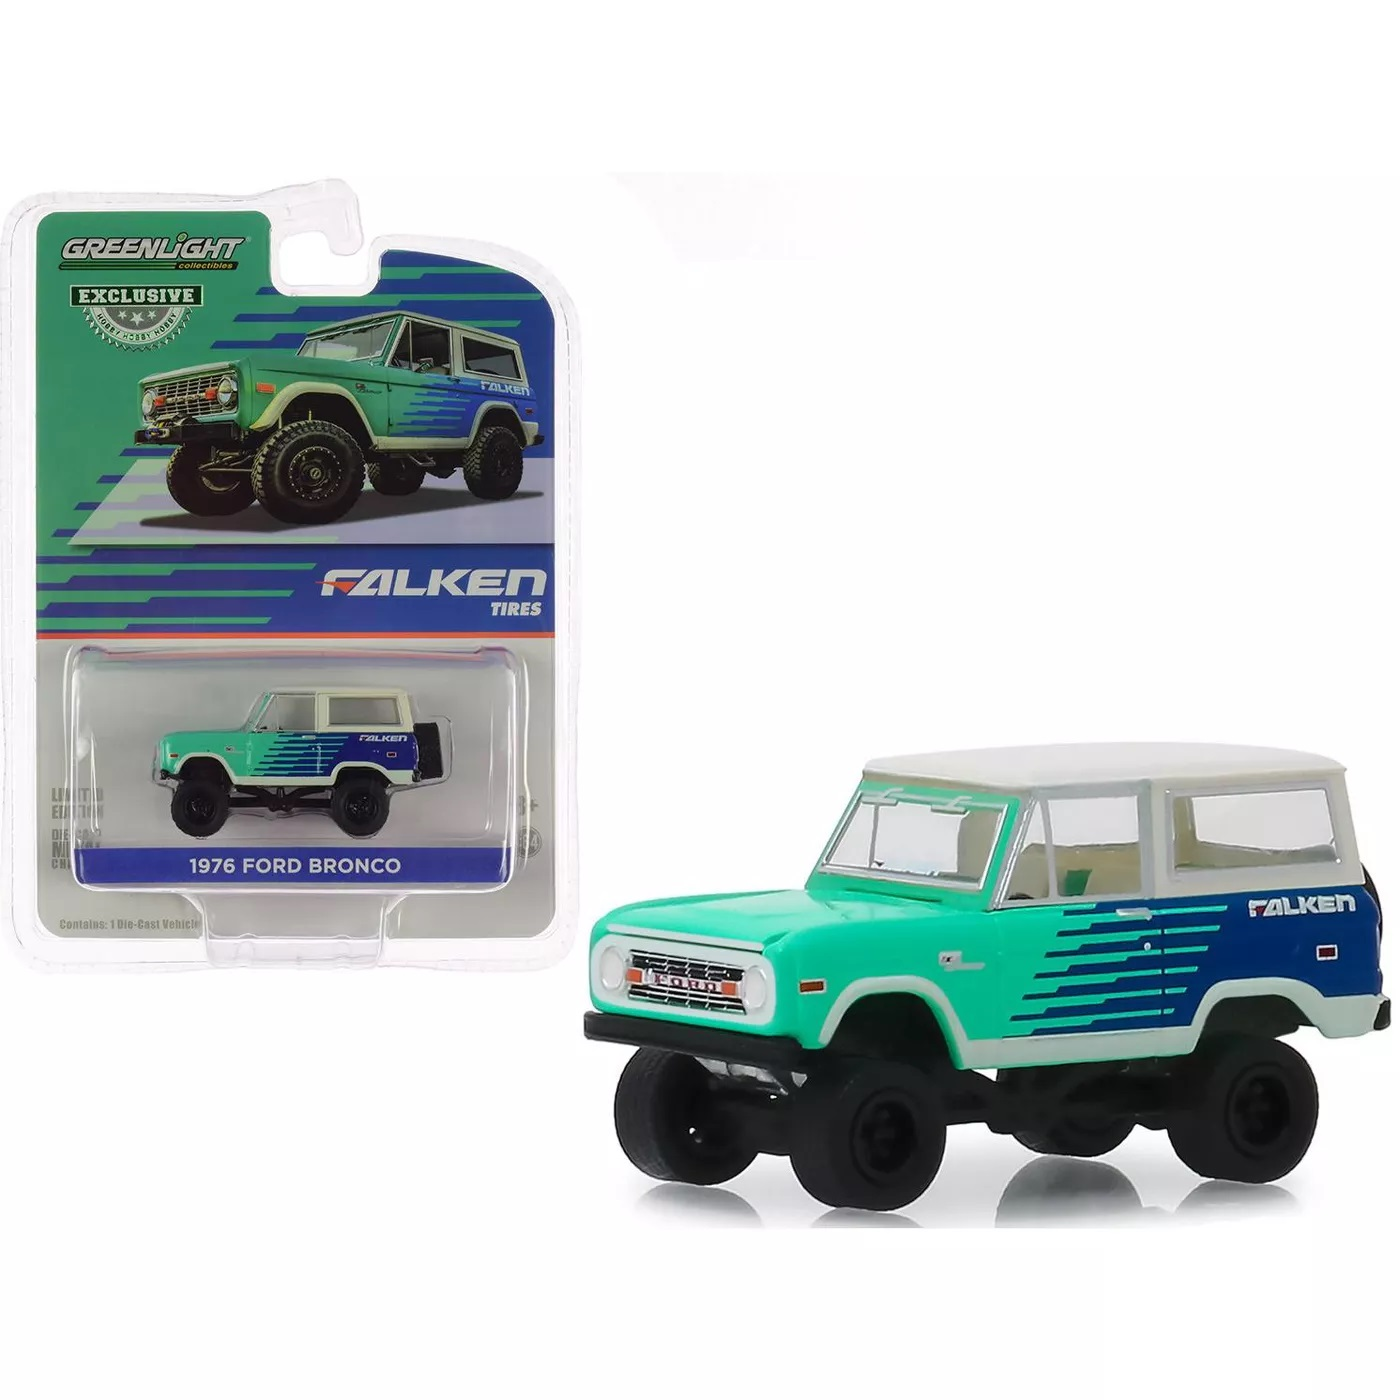 1976 Ford Bronco - Falken Tires, 1:64 Die Cast